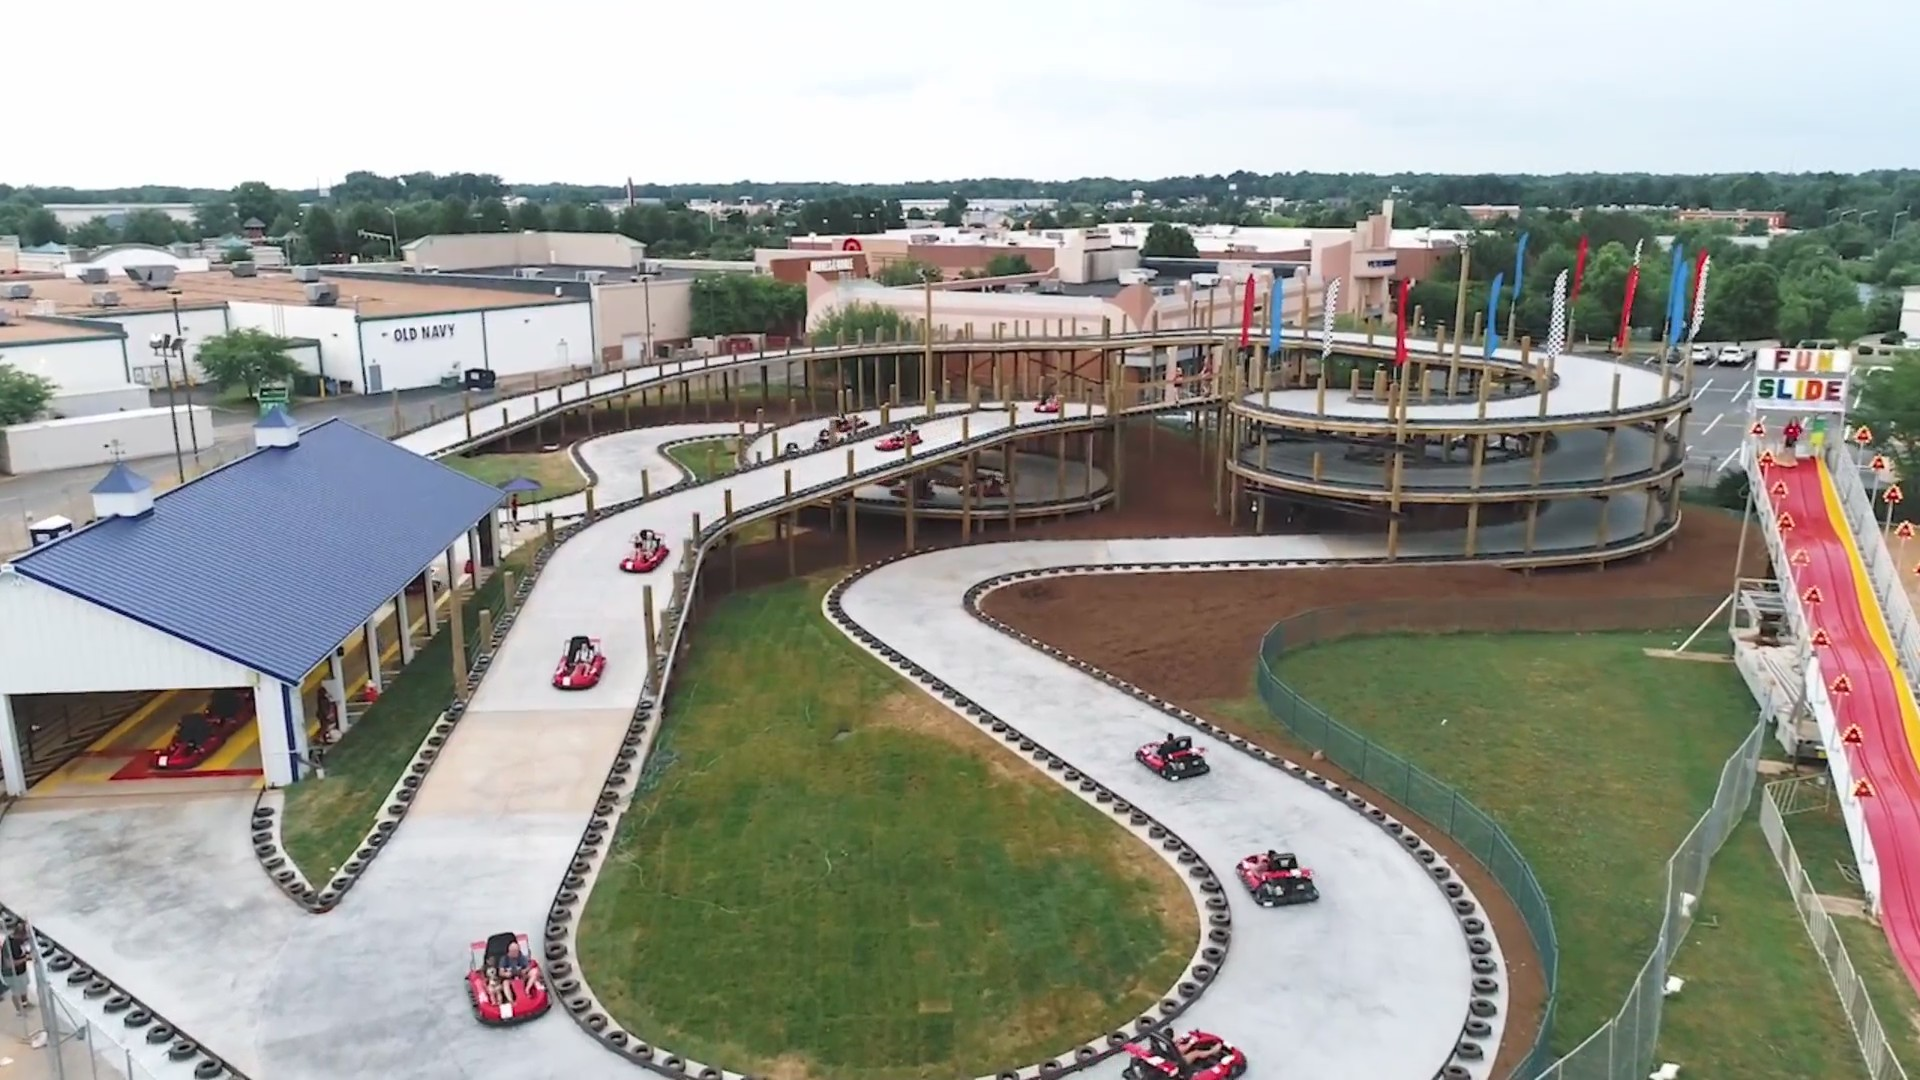 Virginia's first multi-level go-kart track opens this weekend